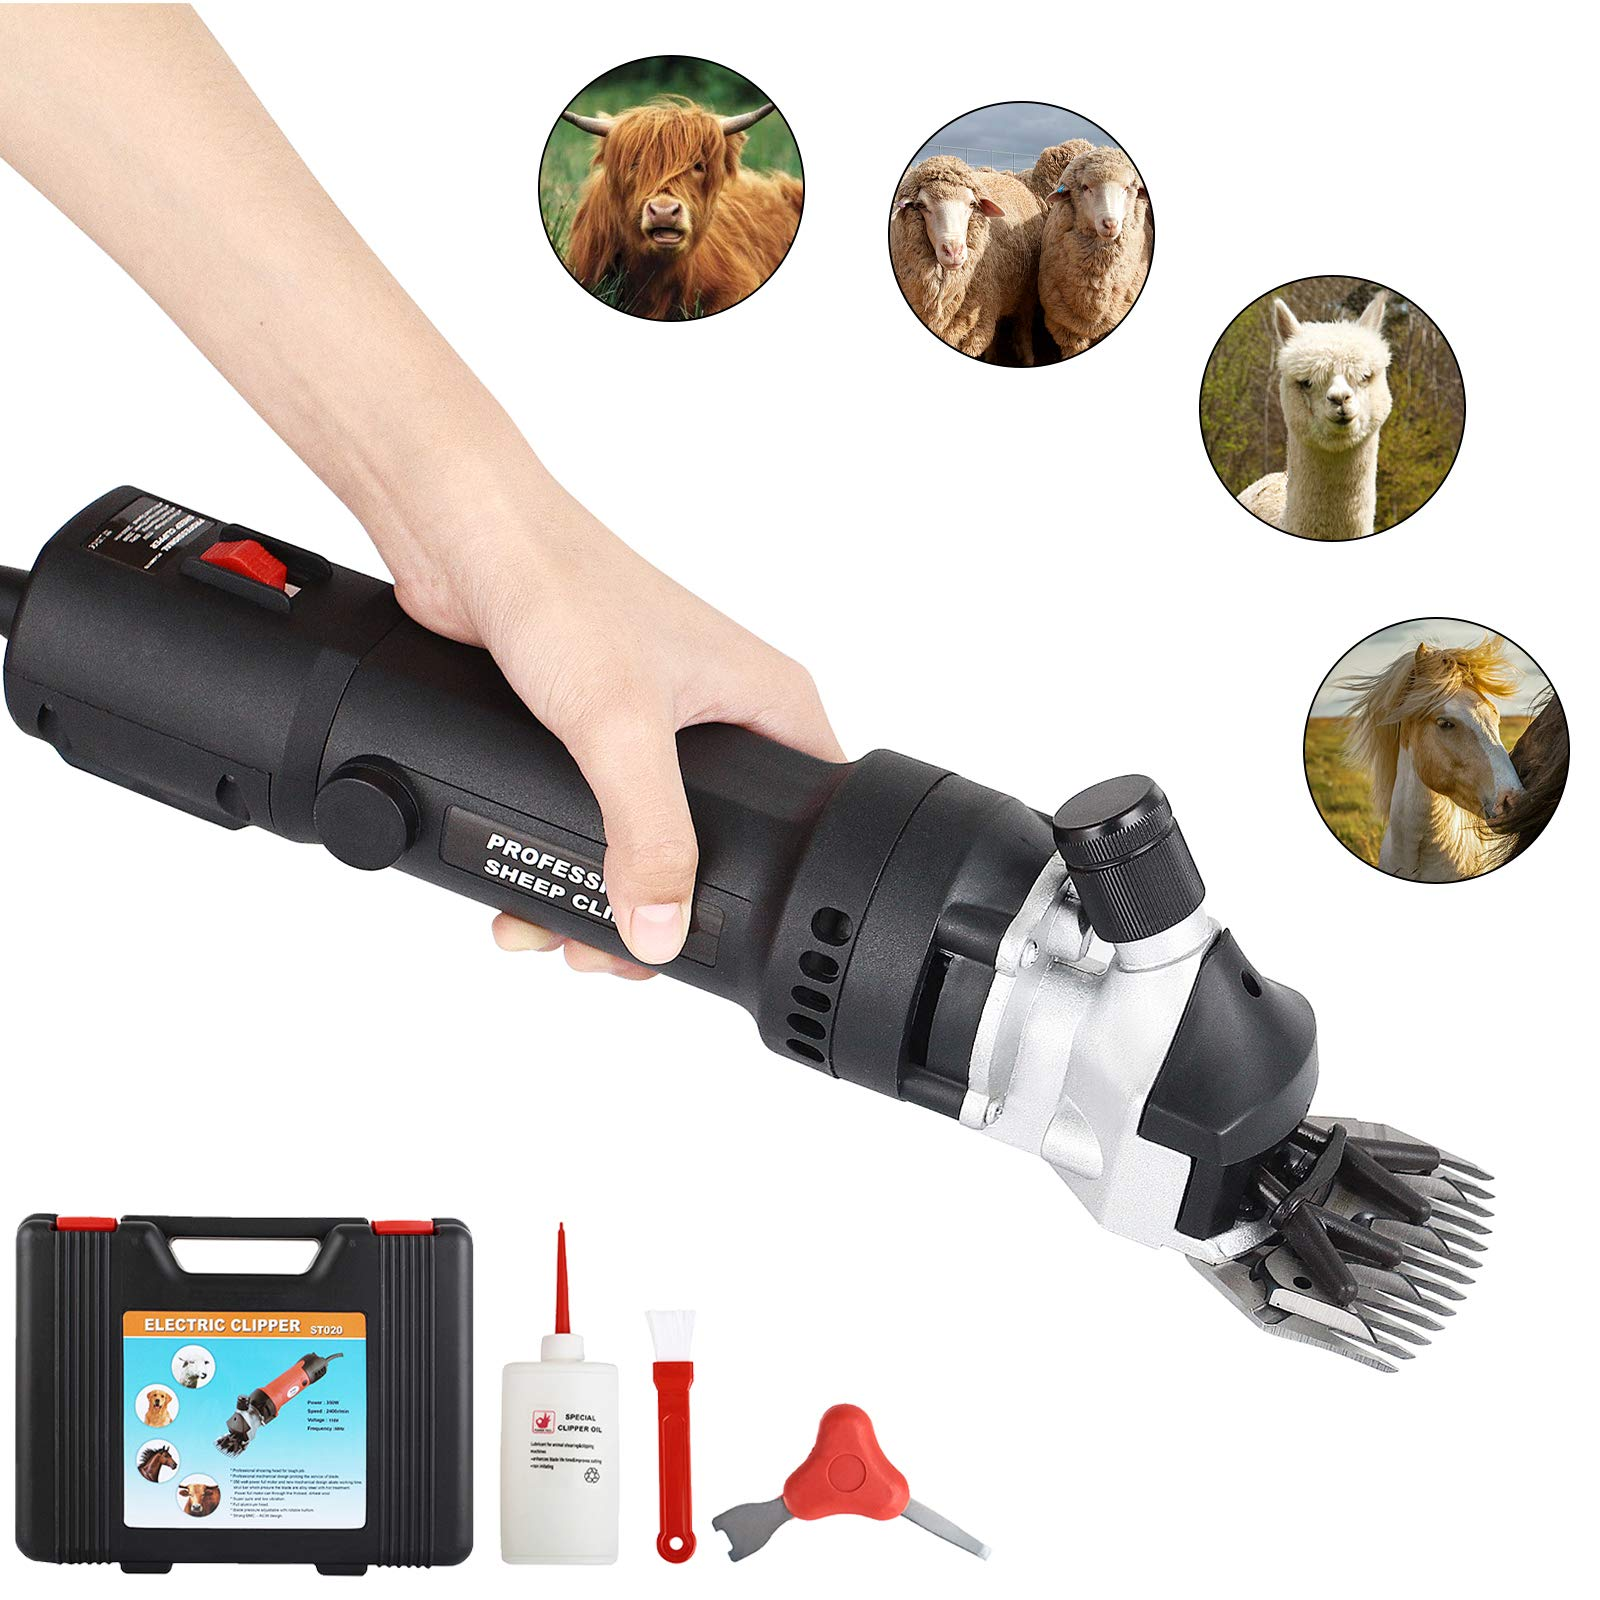 SUNCOO Portable Sheep Shears 350W Animals Electric Clippers for Goats, Alpaca, Horse Support Heavy-Duty Farm Livestock Shearing Grooming Work (Black) by SUNCOO